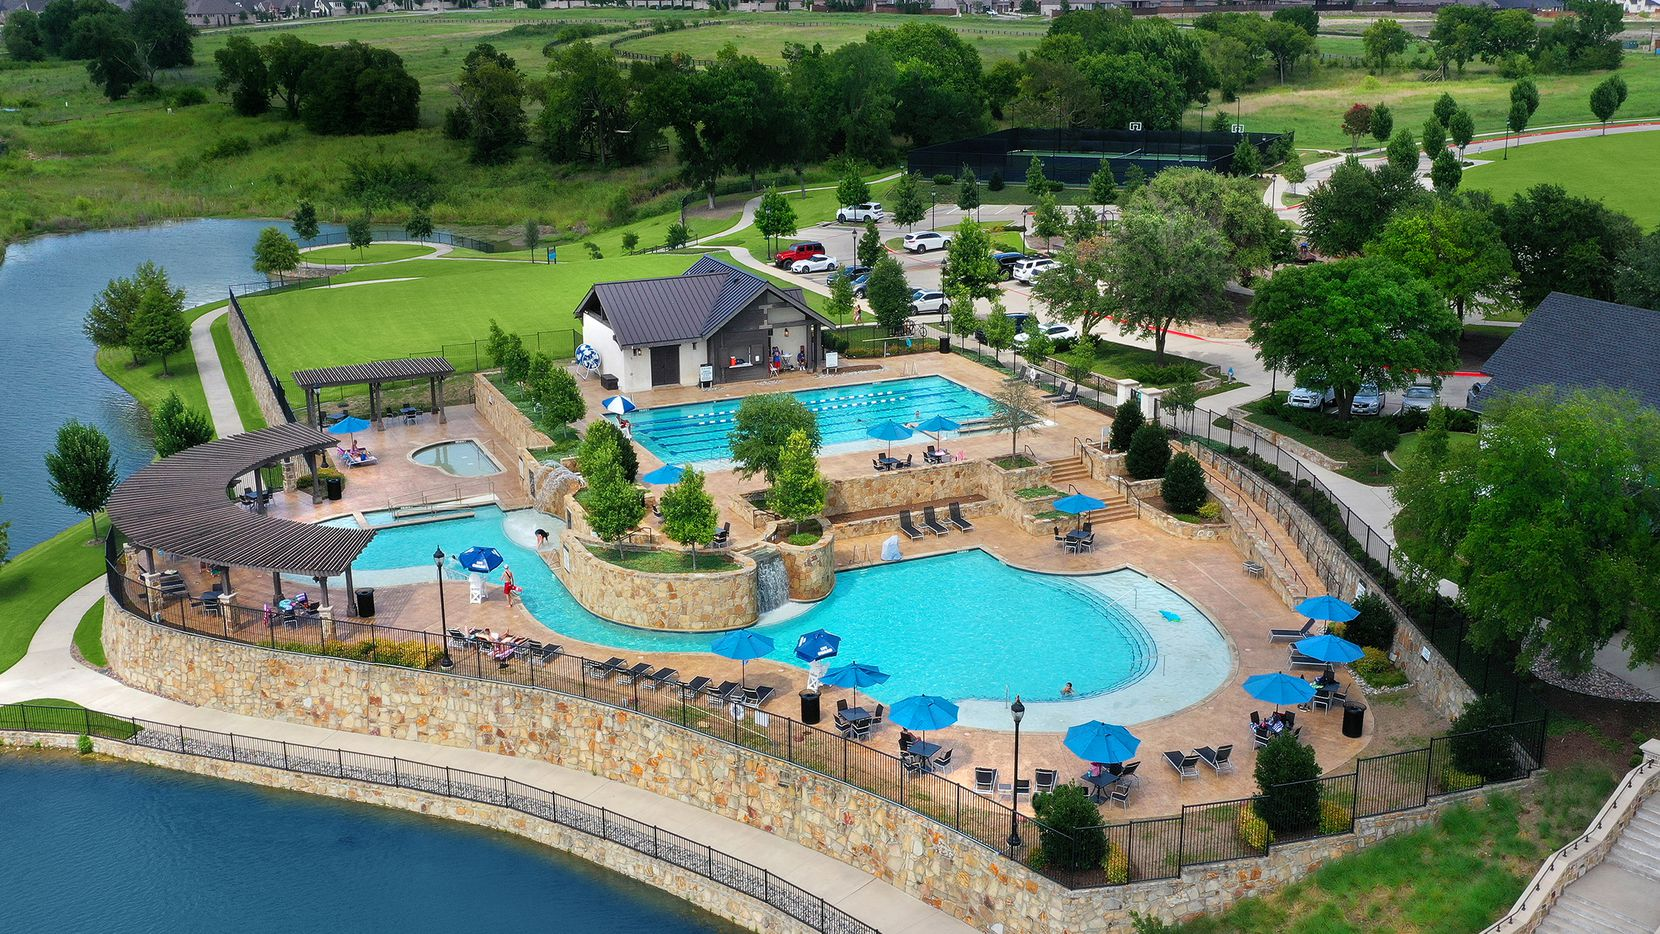 Mustang Lakes, Celina's master-planned community by Cambridge Companies, offers new homes priced from the $500s to $2 million-plus.